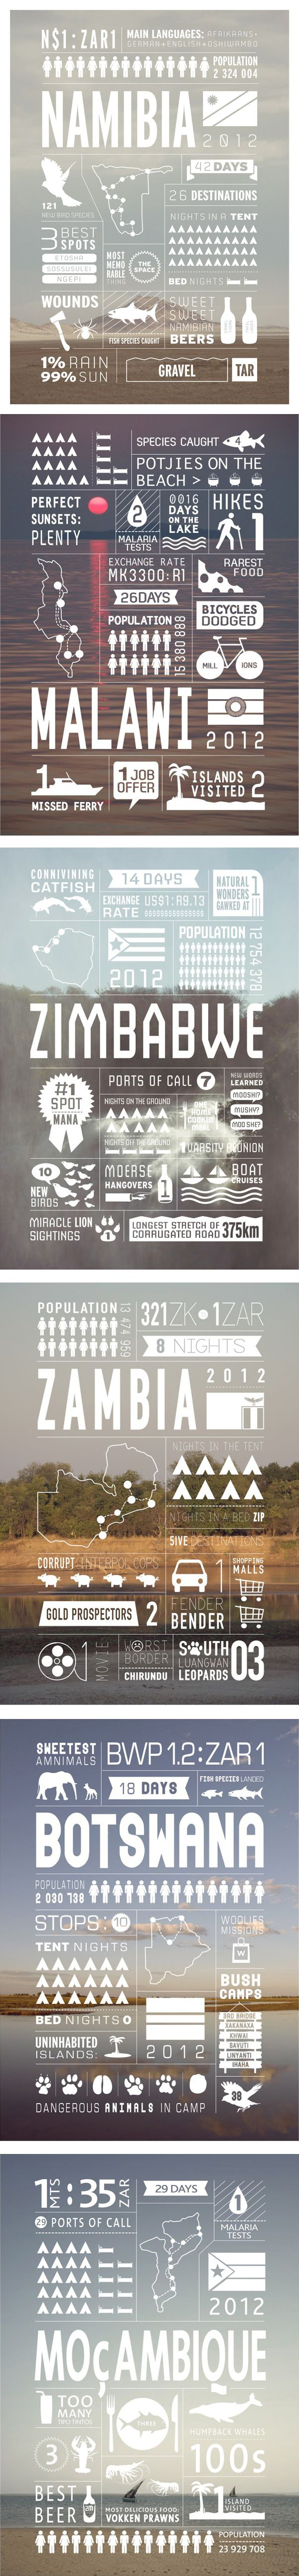 inforgraphic  http://creativeroots.org/2013/03/southern-africa-travel-infographics/